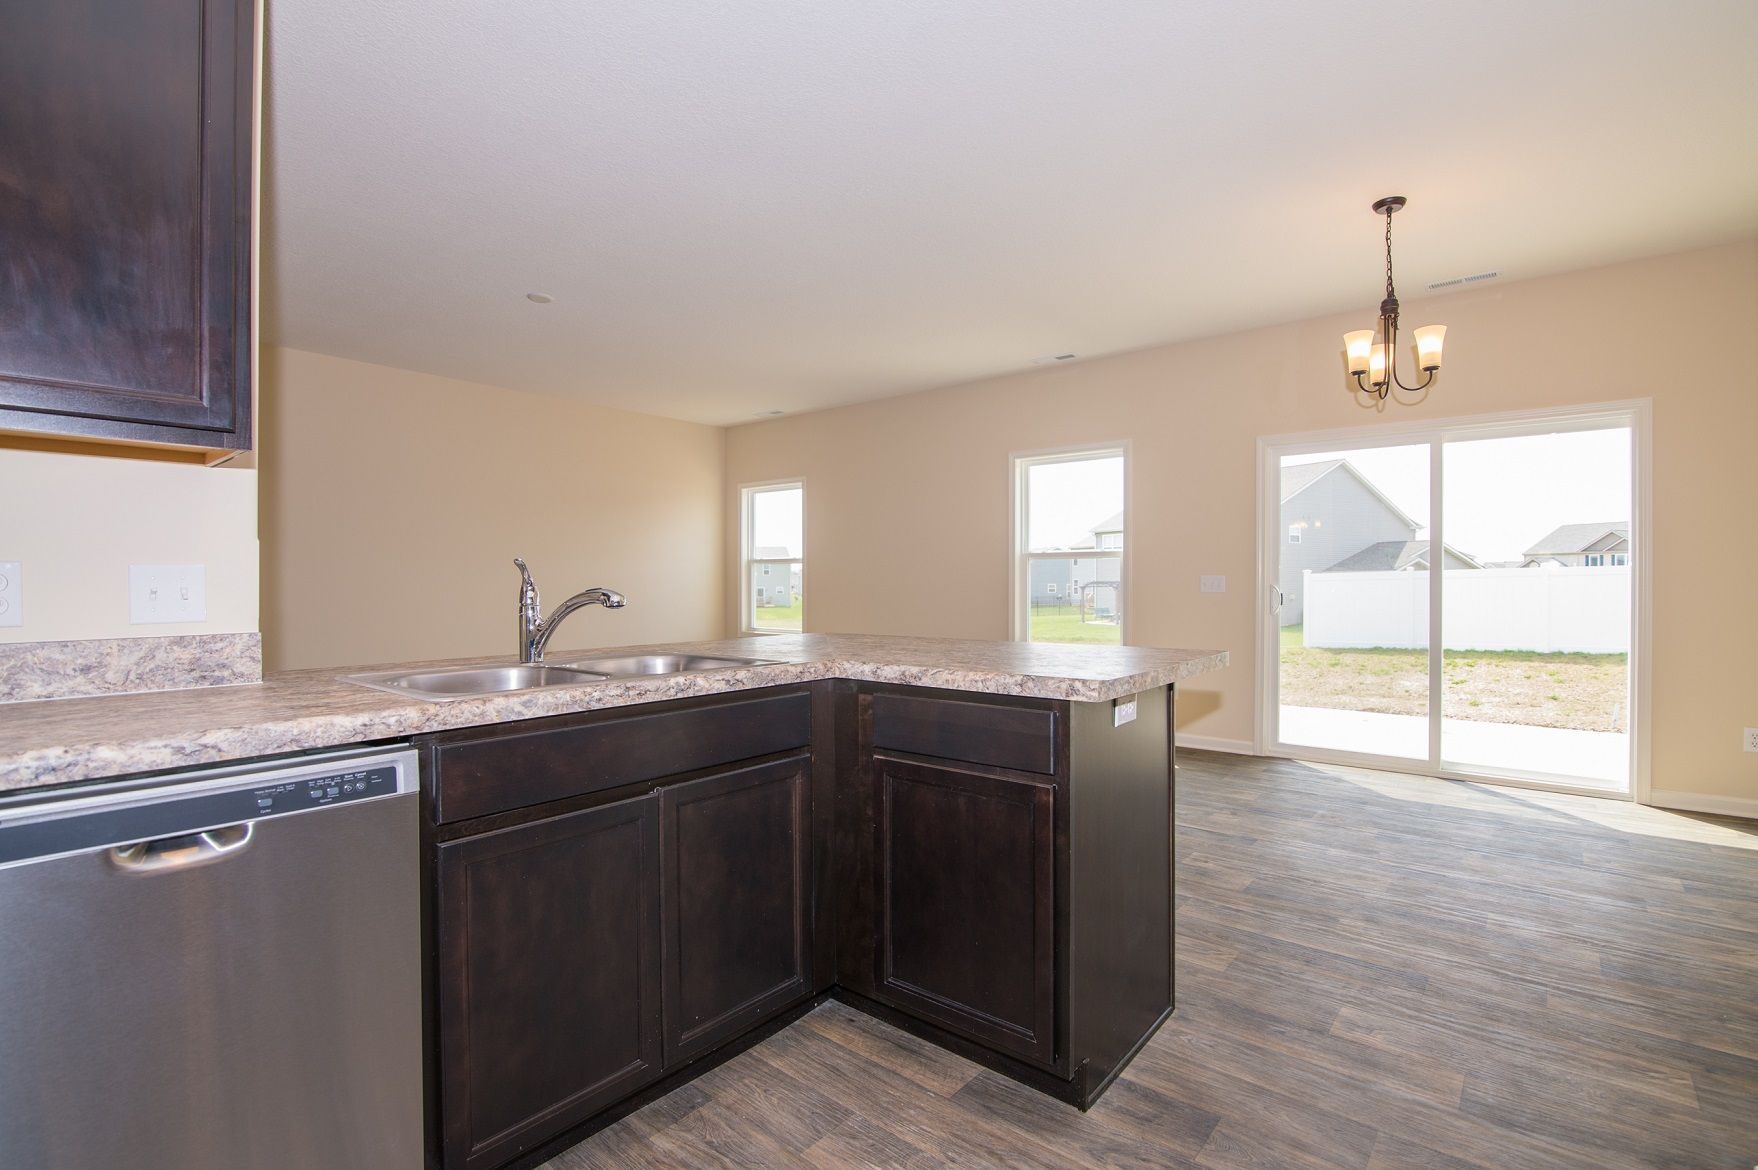 Kitchen featured in the Heyden By D.R. Horton in Fort Wayne, IN